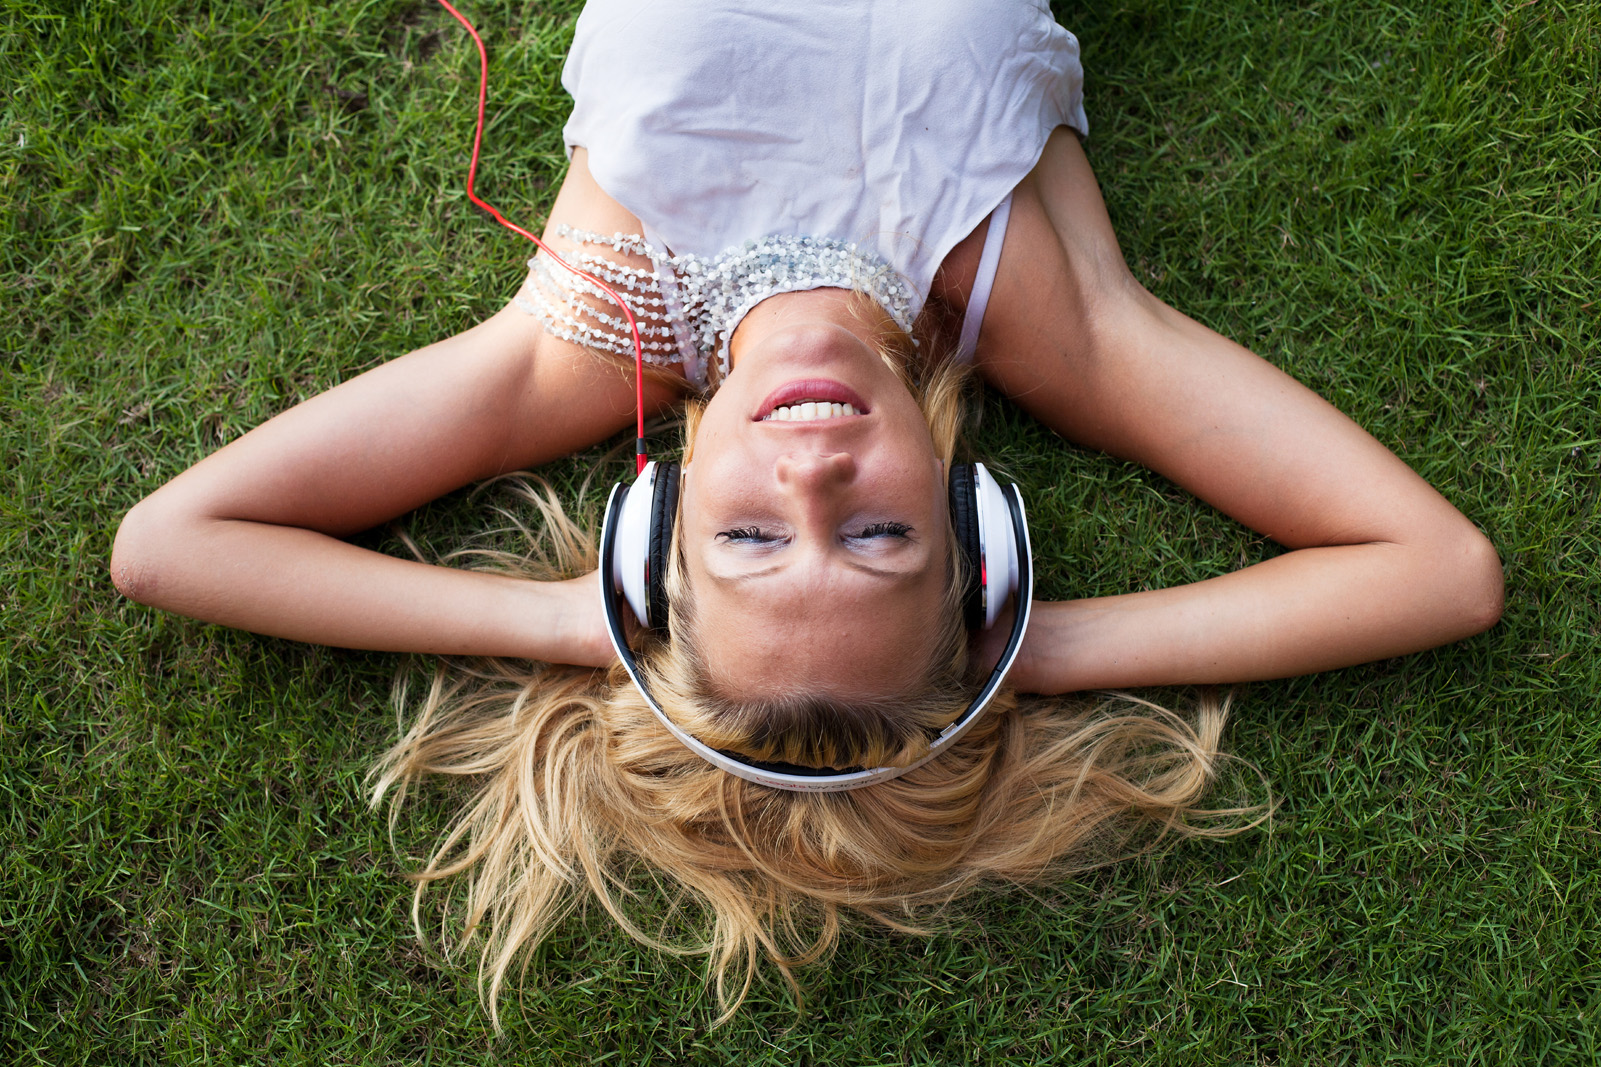 Lying on the lawn to listen to beautiful music 51451